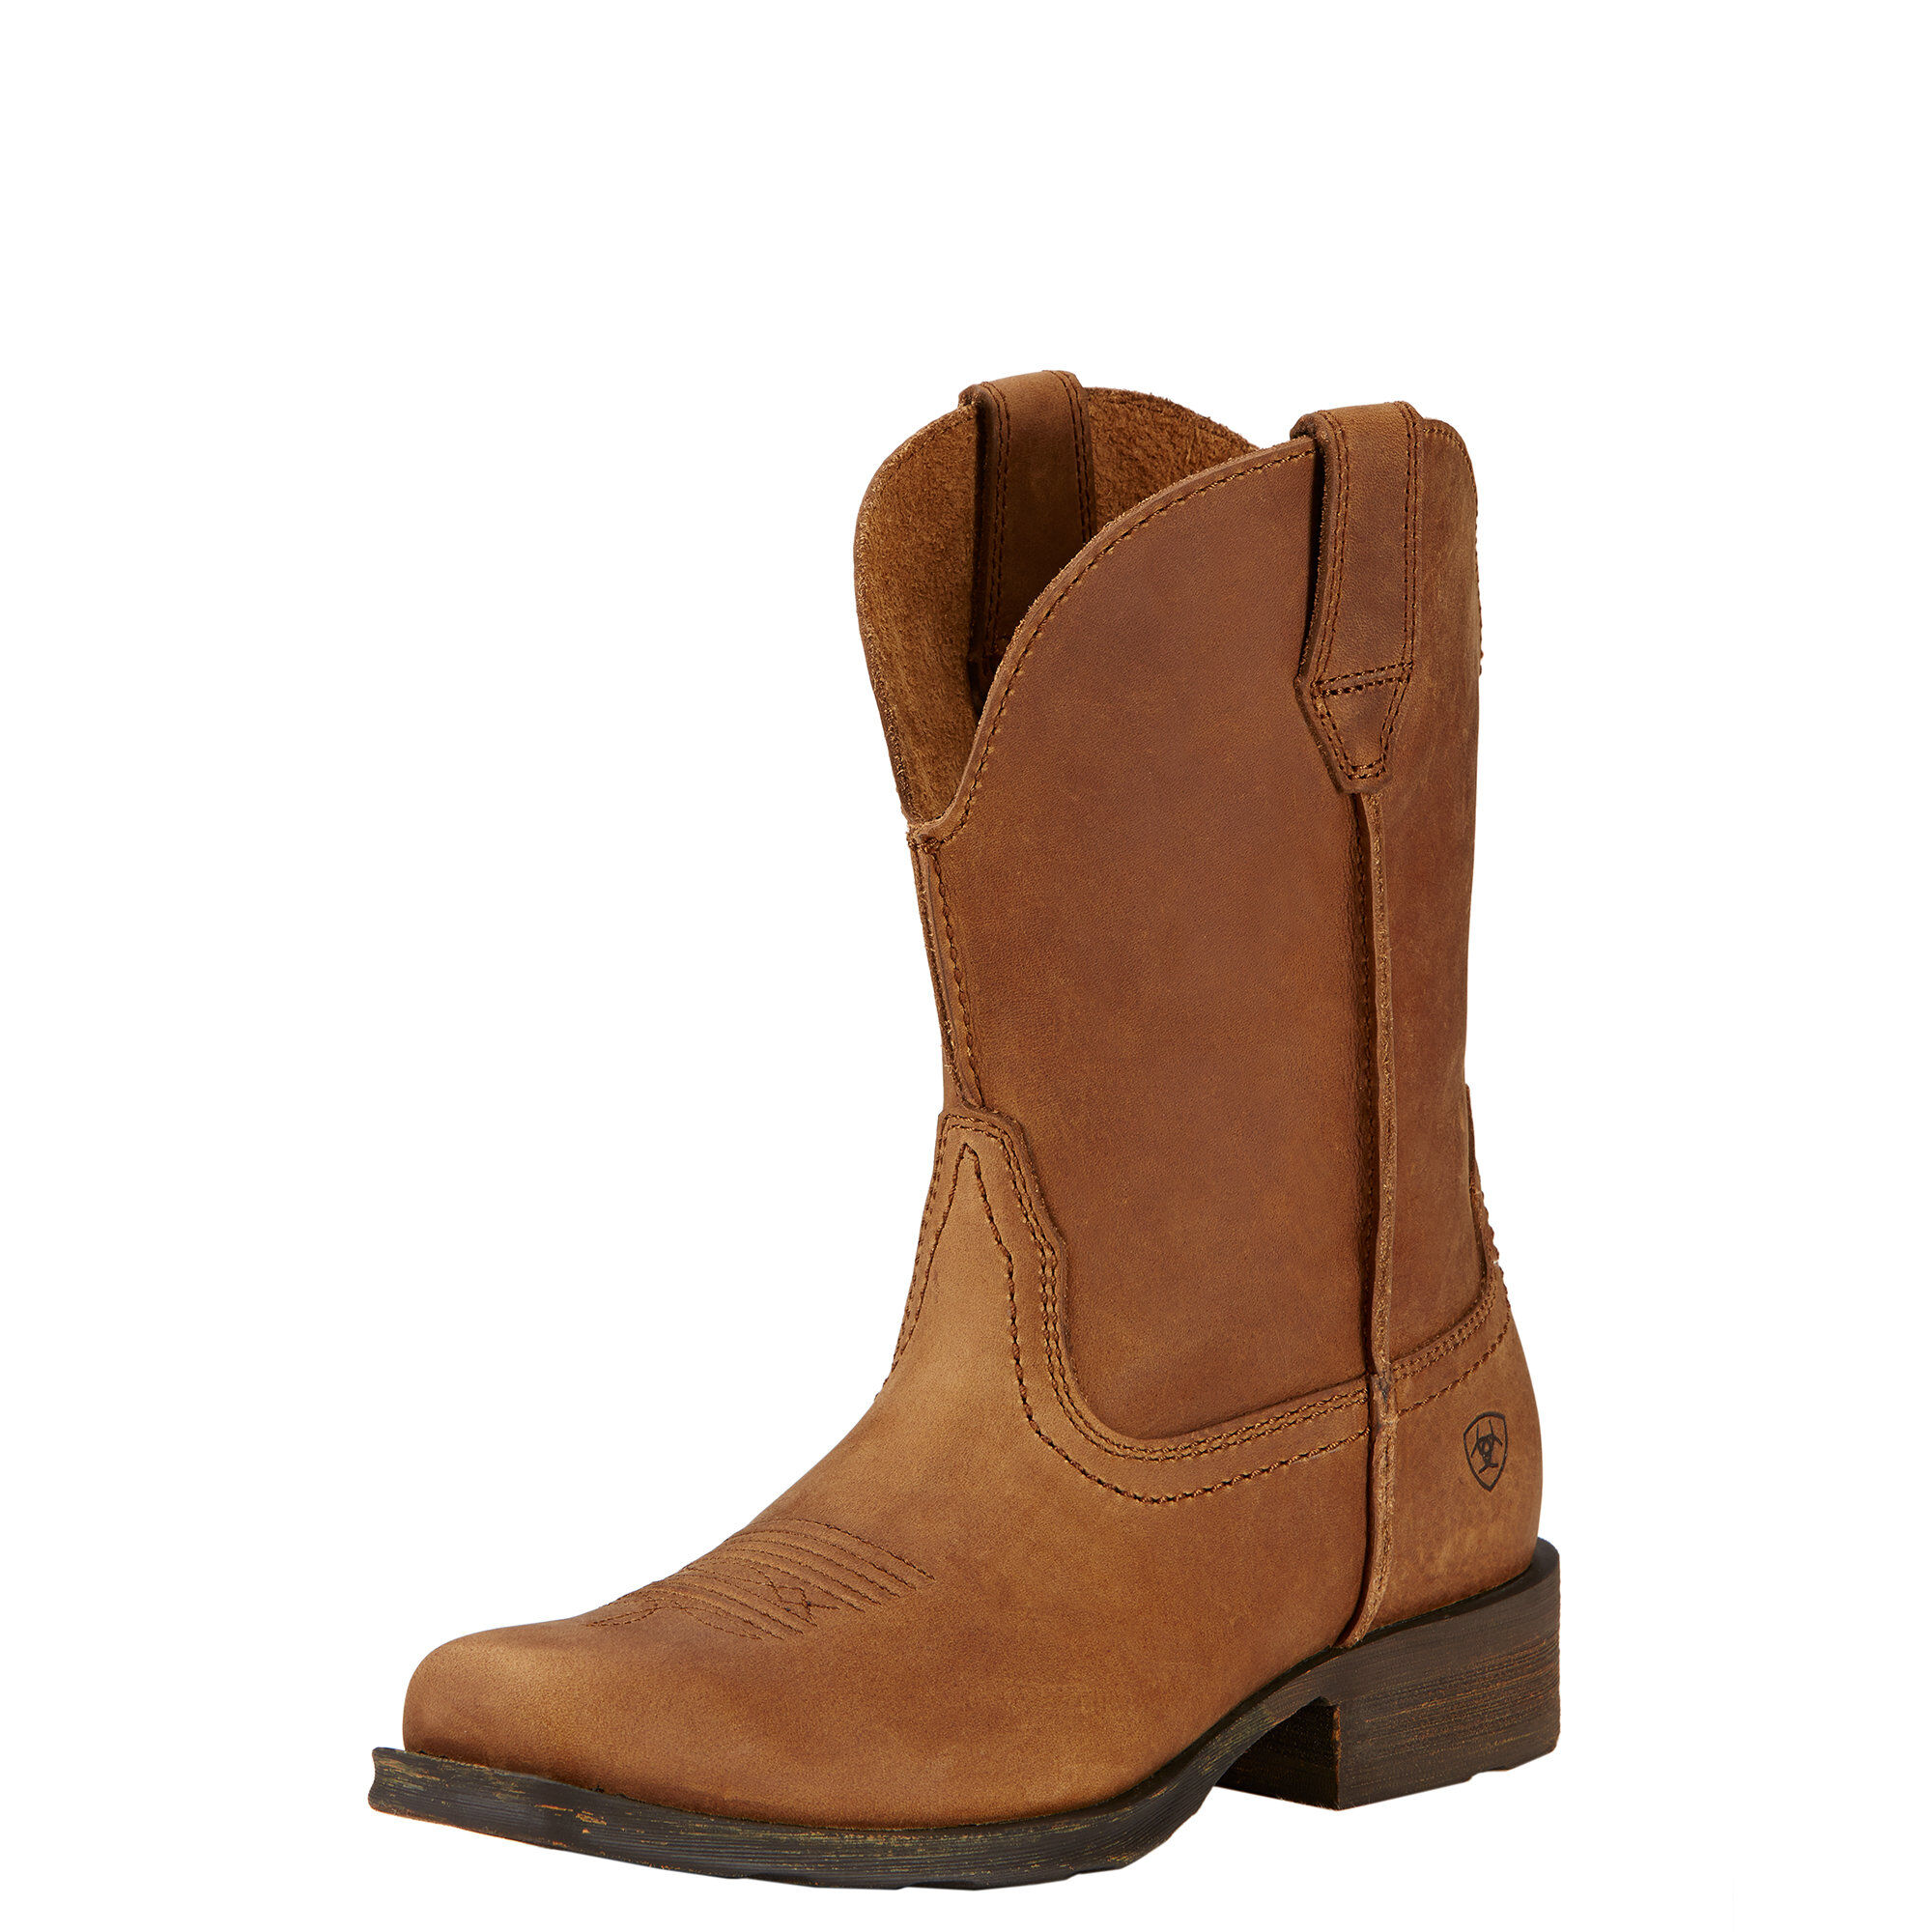 Women's Rambler Western Boots in Dusted Brown Leather by Ariat